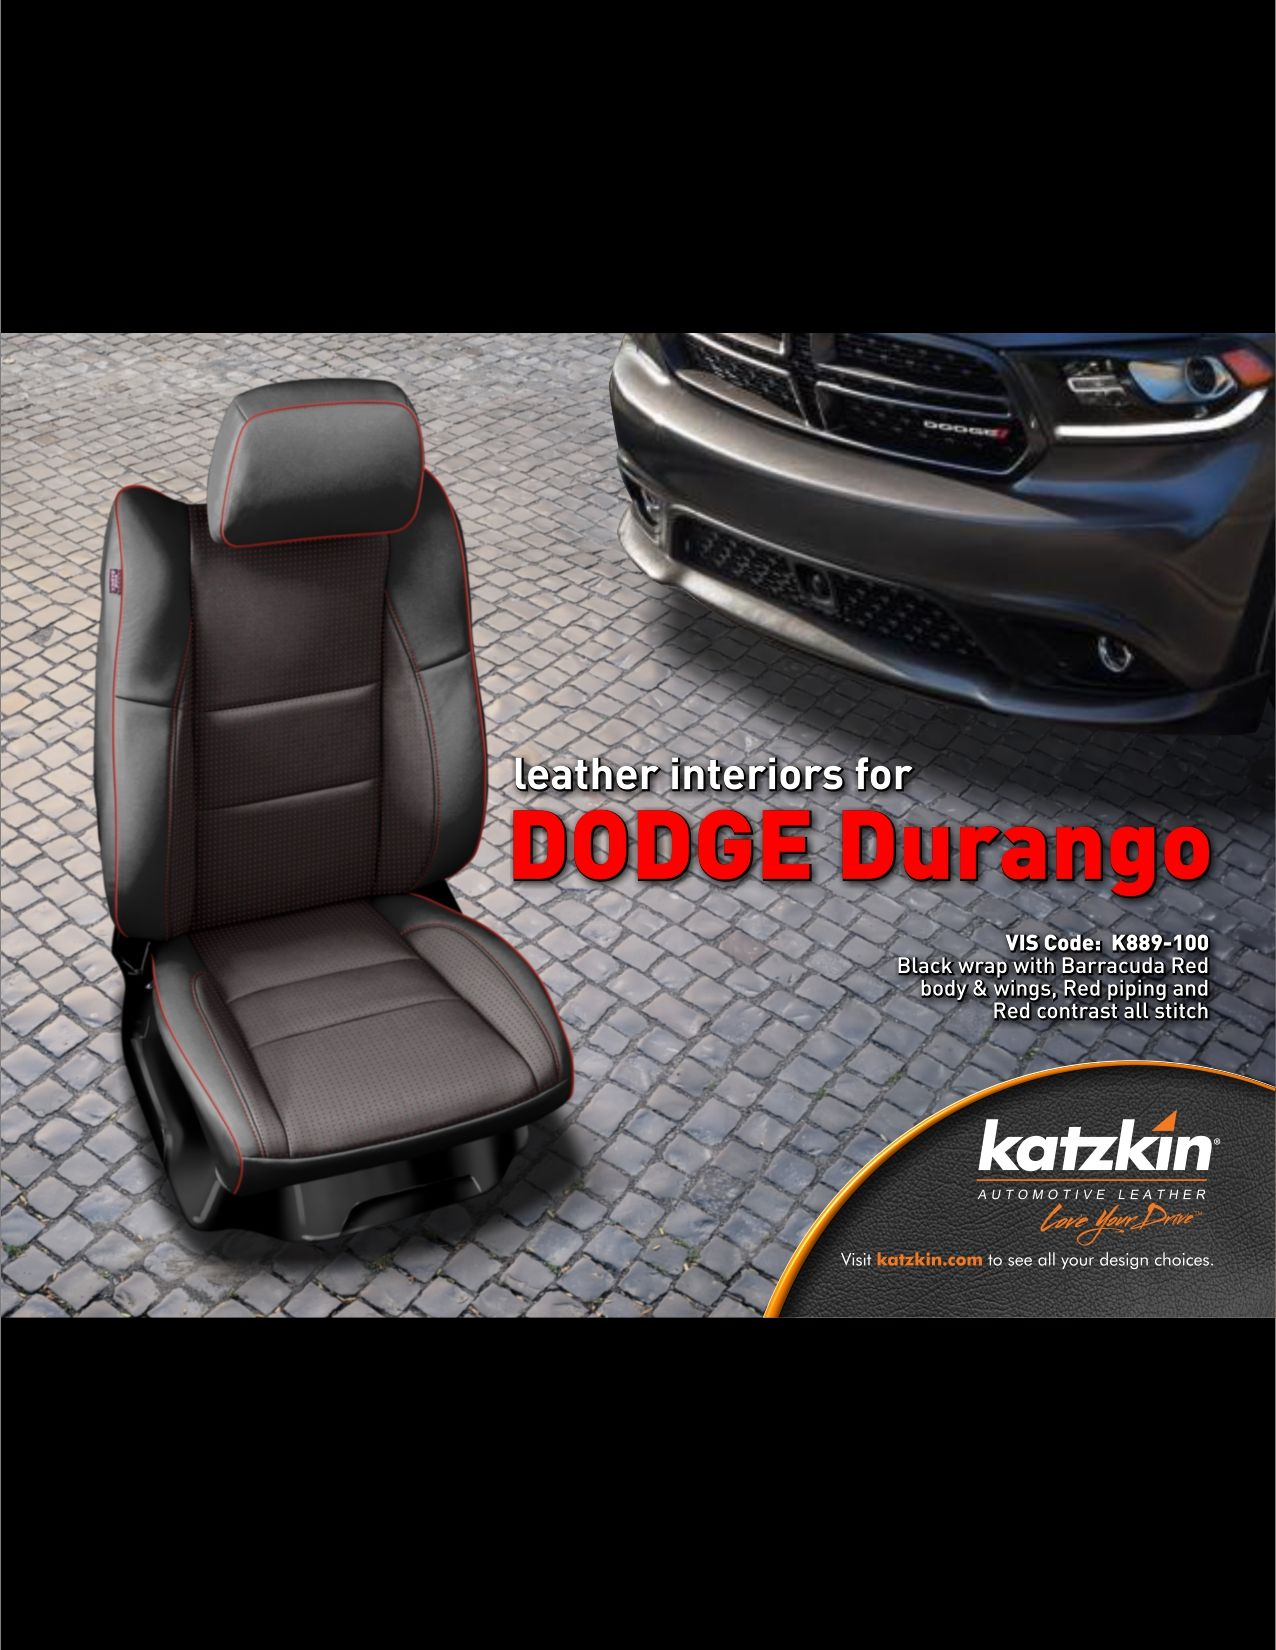 Dodge Durango (E-Brochure)